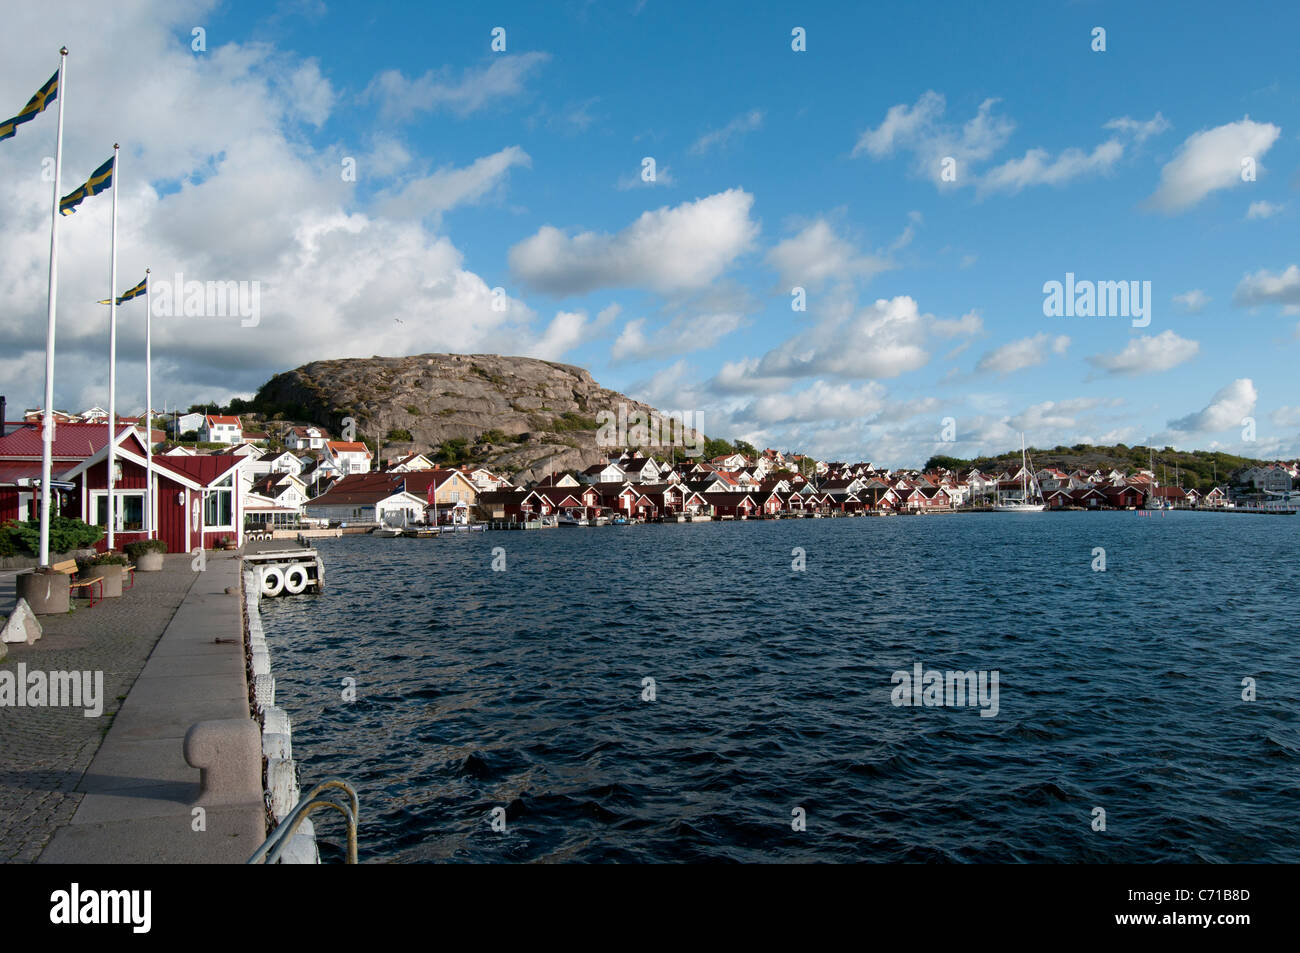 Waterfront at Hunnebostrand, south-west Sweden - Stock Image